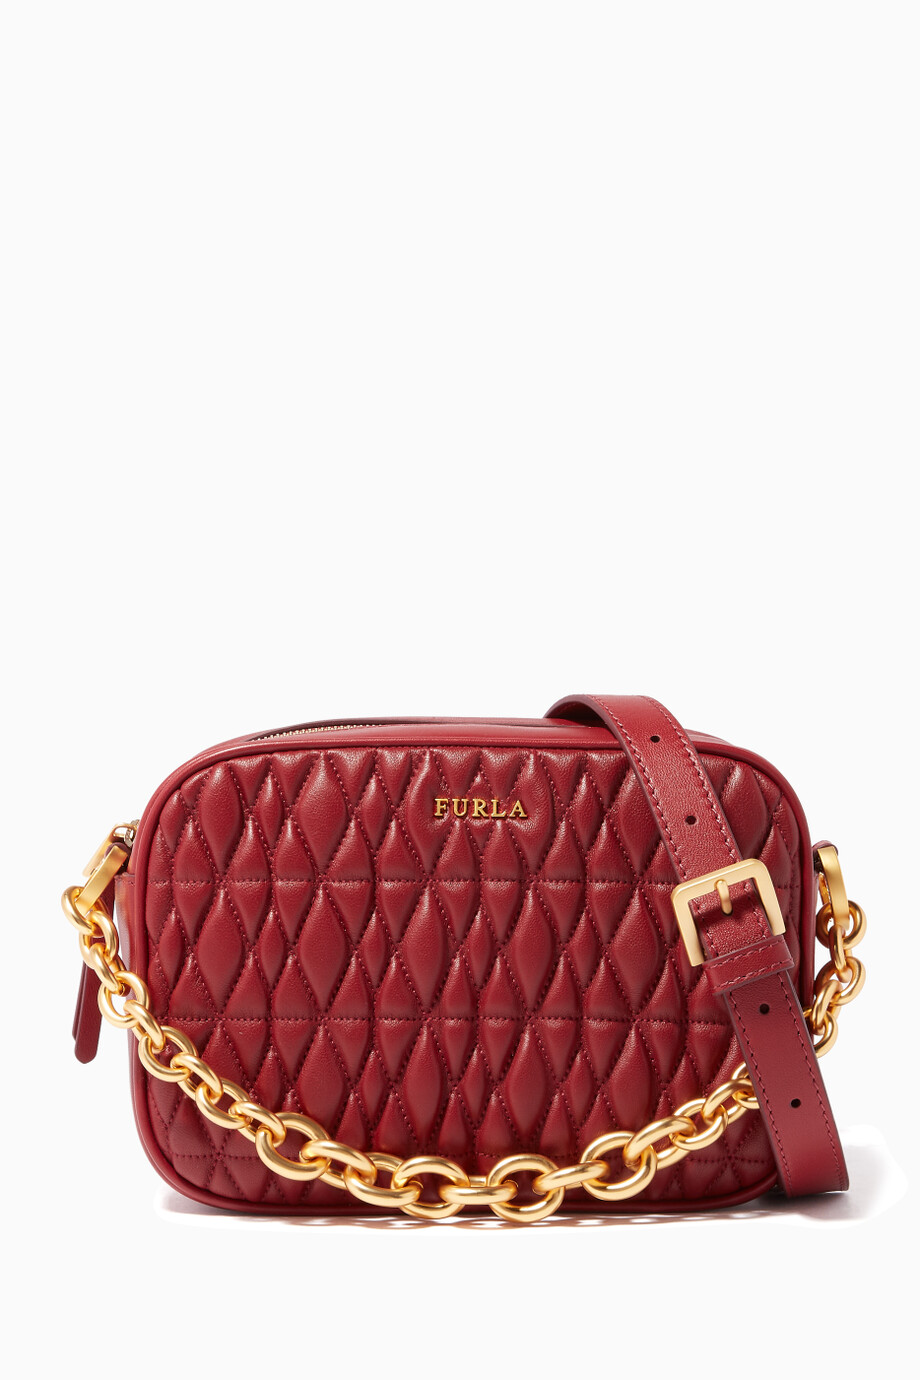 8bd448fa0 Shop Furla Red Dark-Red Quilted Cometa Mini Cross-Body Bag for ...